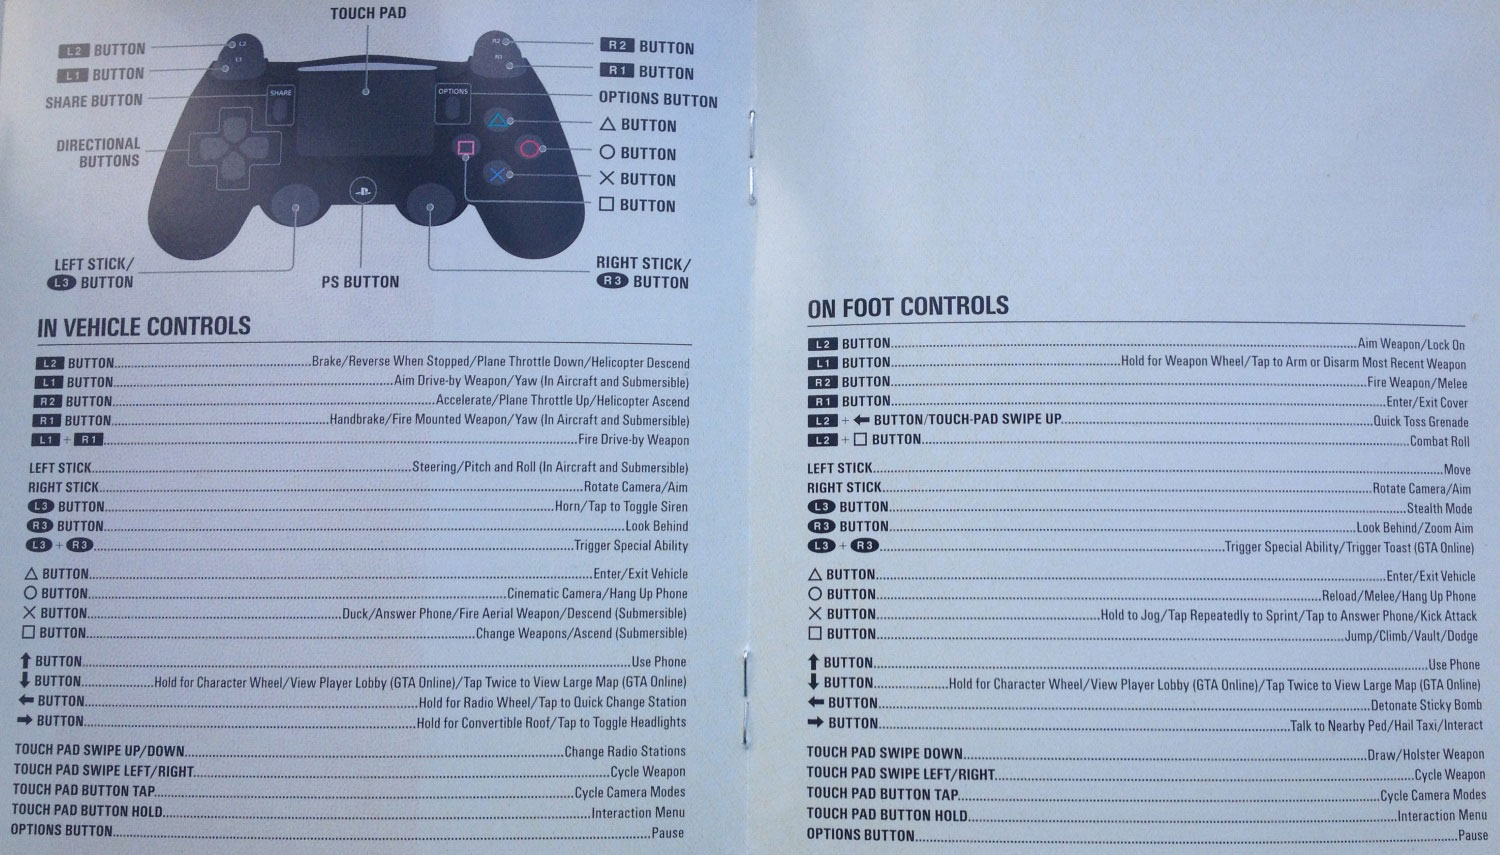 gta 5 cheat codes with Gta 5 Guide Ps4 Controls on gta5cheats moreover United States ZIP Code Database Gold Edition  screenshot moreover mh  ments together with Gta Online Desperately Needs Better Weapon Management also Gta 5 Guide Ps4 Controls.